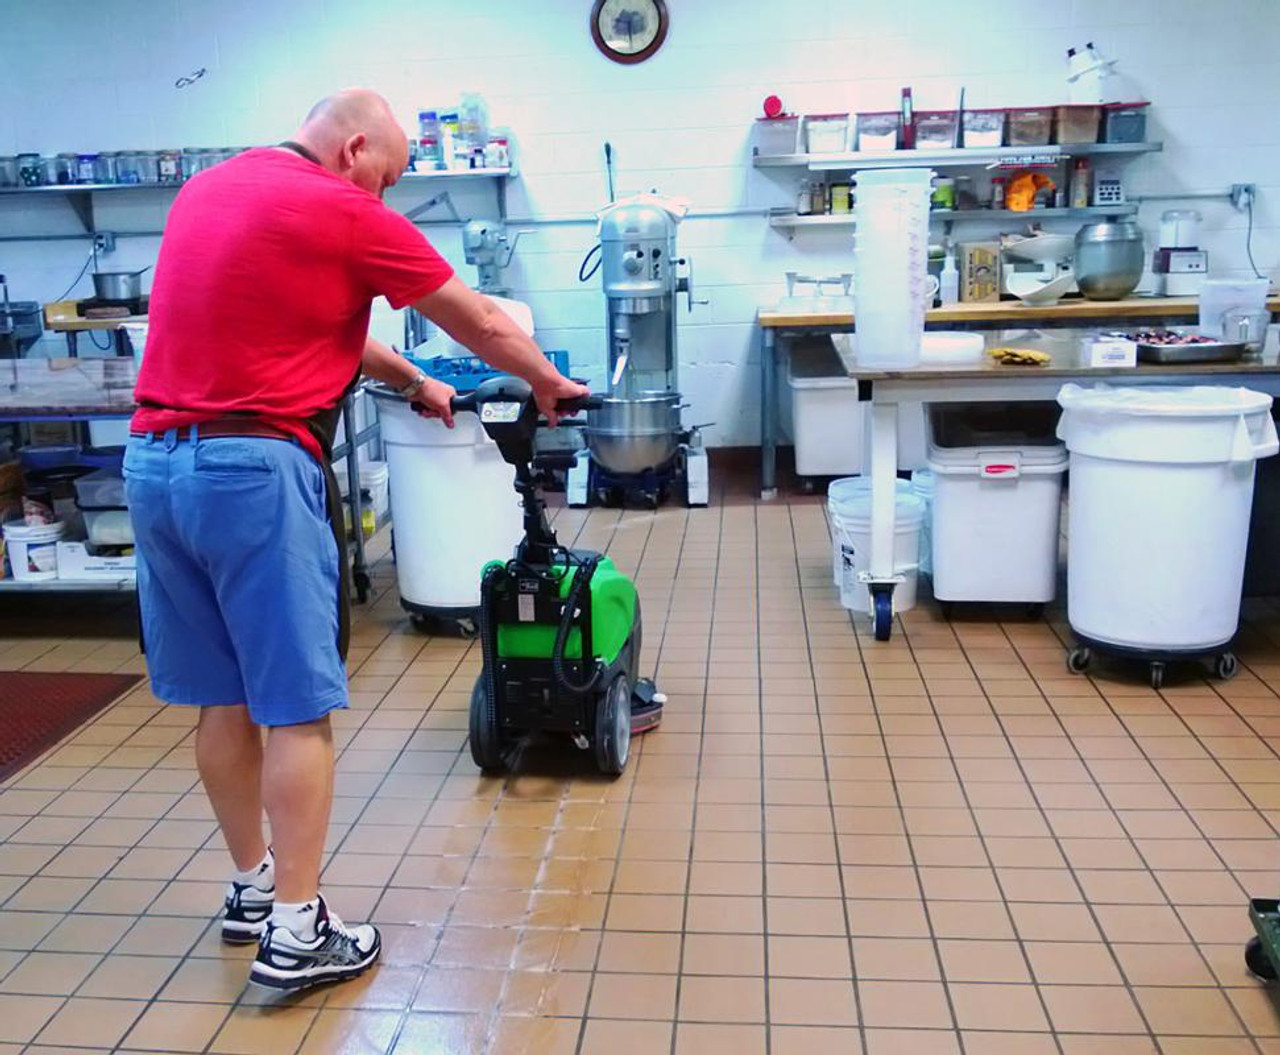 Floor clean up in a bakery.